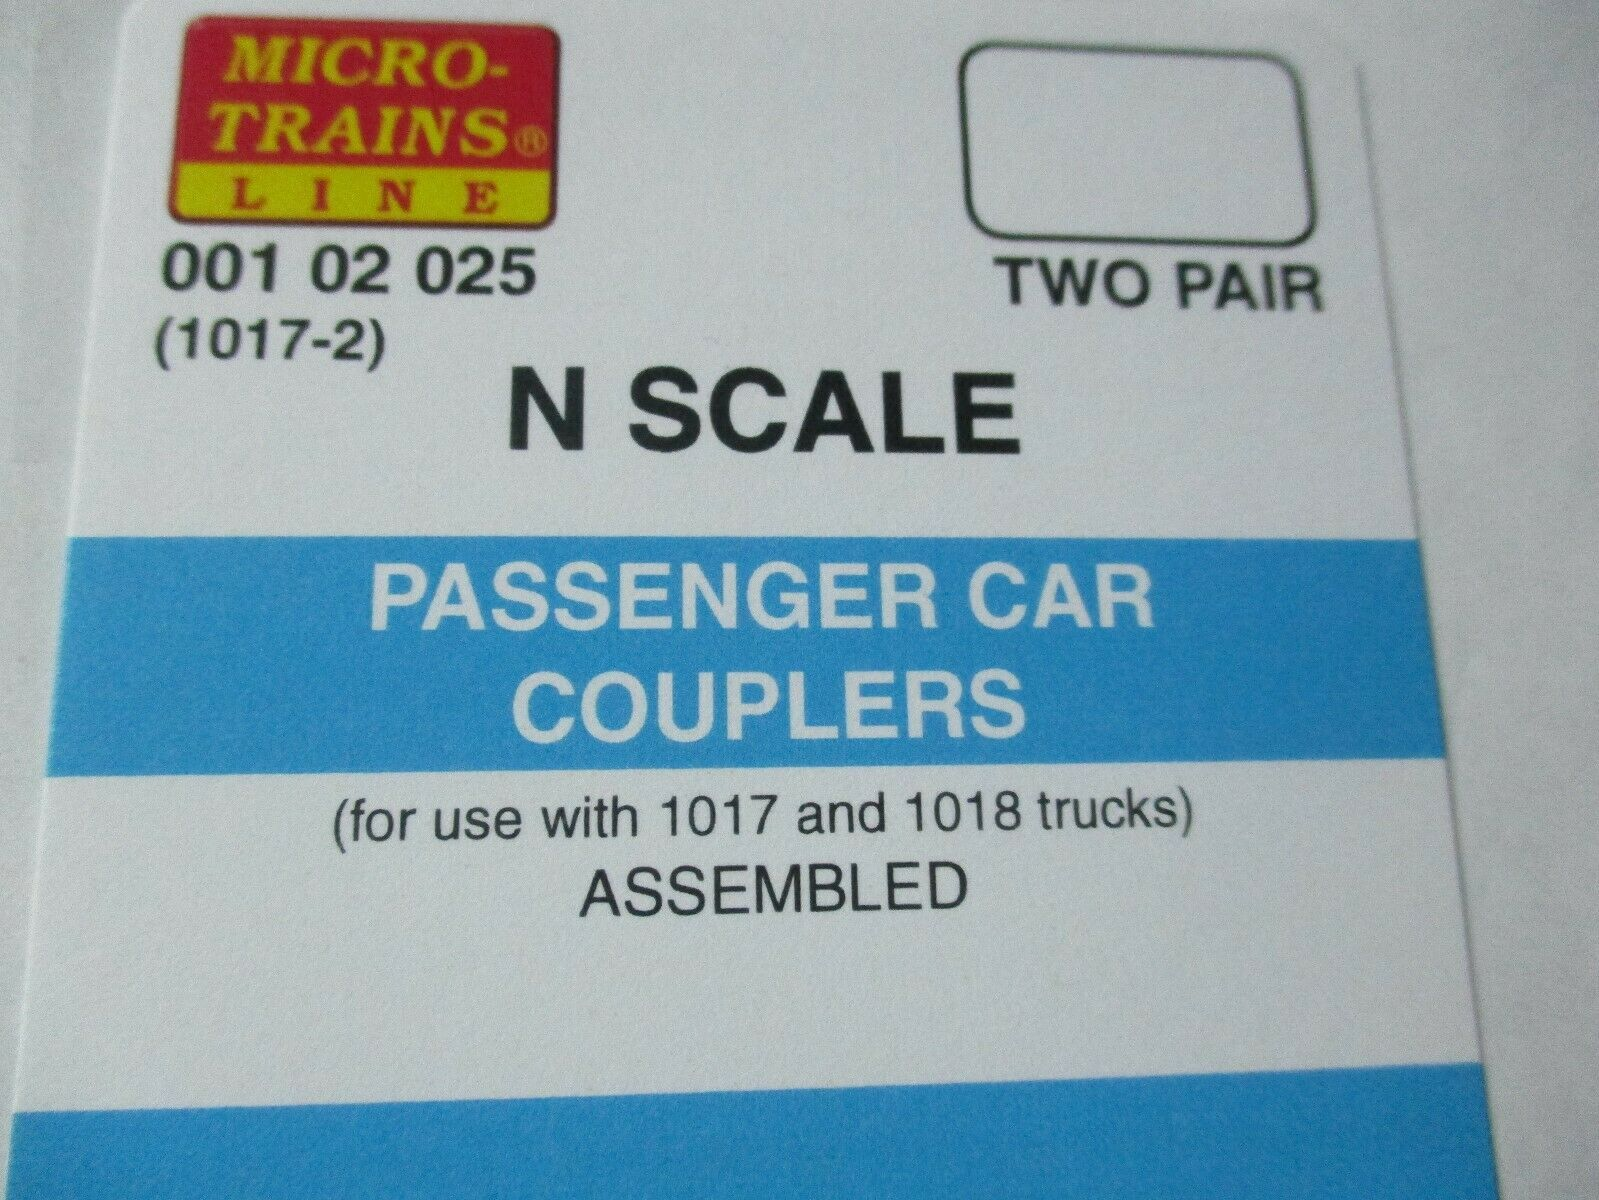 Micro-Trains Stock #00102025 Passenger Car Couplers Black for 1017 & 1018 Truck